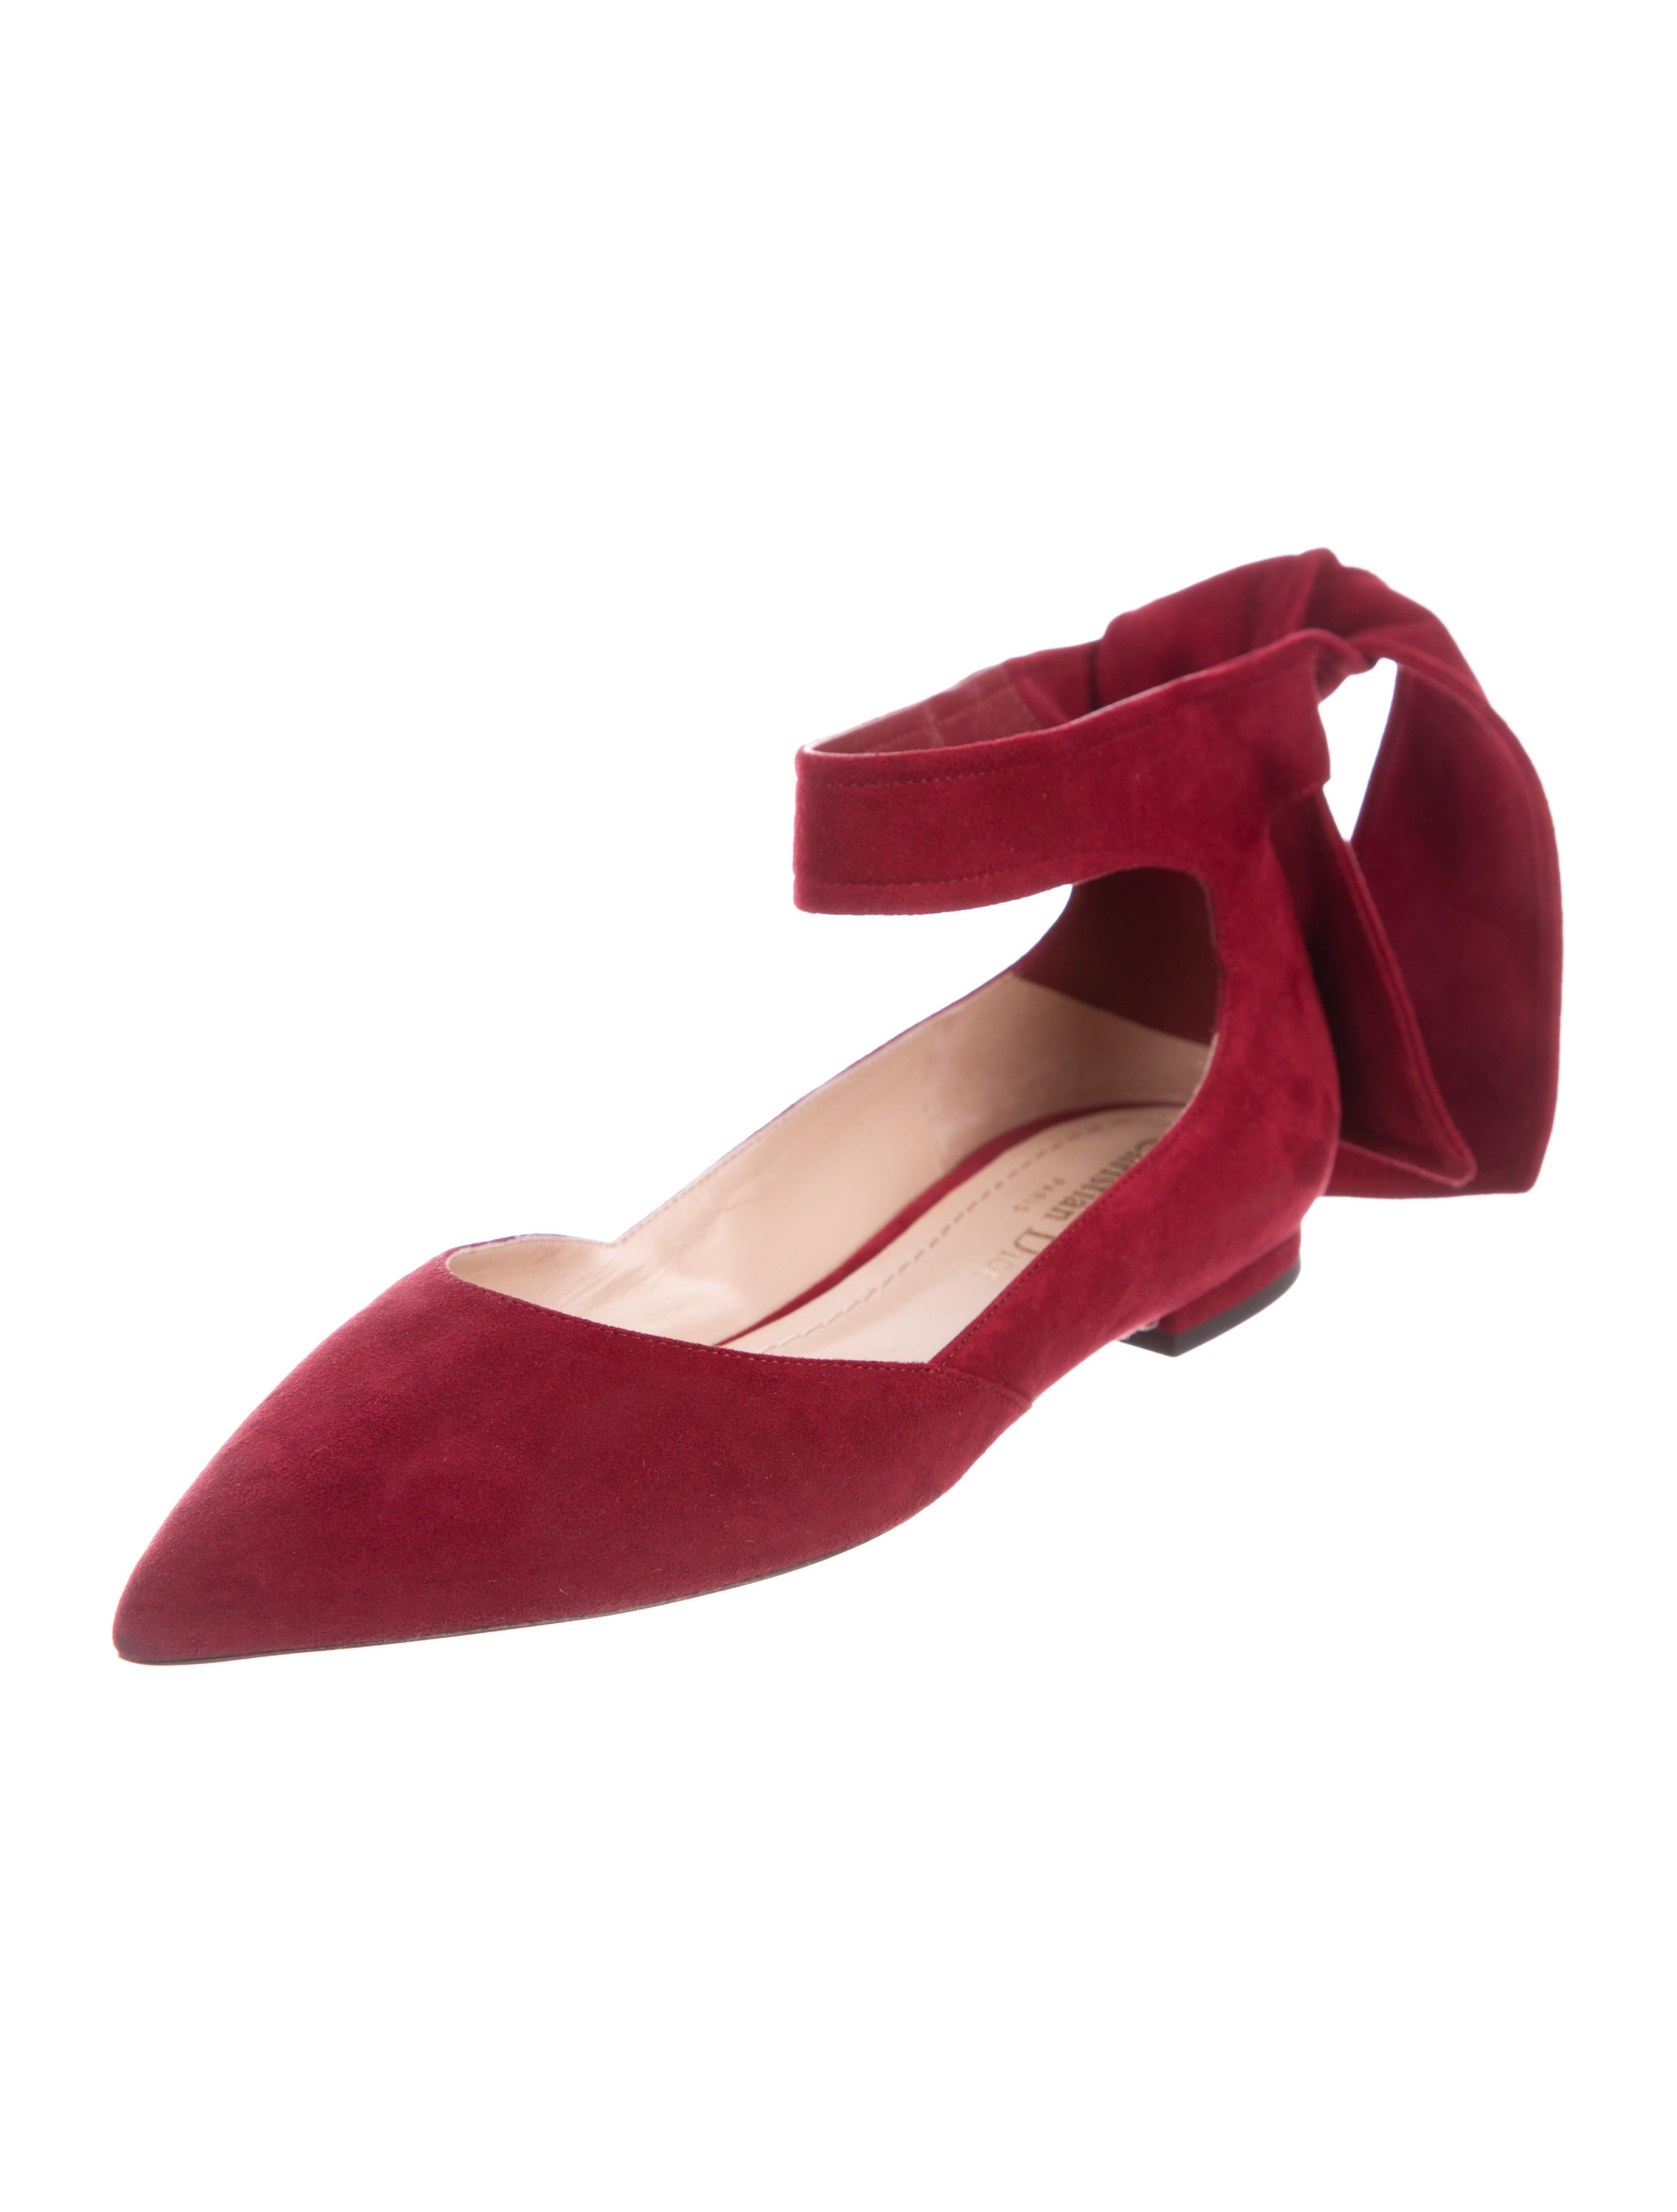 from china online free shipping browse Christian Dior La Belle Suede Flats original prices for sale RcUA0Jlzz